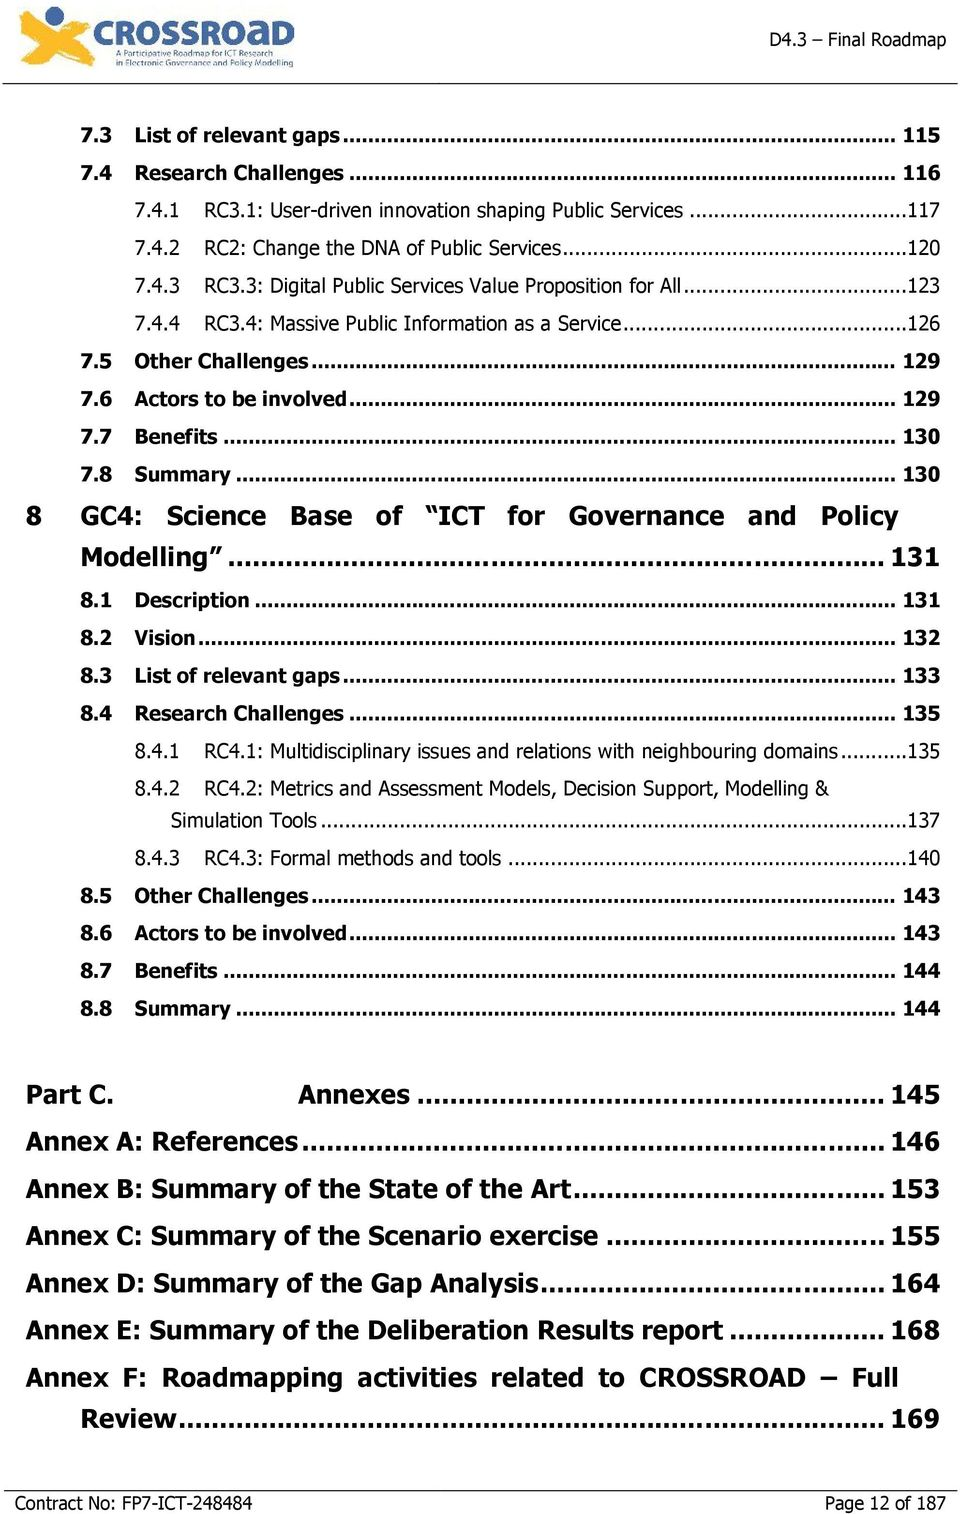 8 Summary... 130 GC4: Science Base of ICT for Governance and Policy Modelling... 131 8.1 Description... 131 8.2 Vision... 132 8.3 List of relevant gaps... 133 8.4 Research Challenges... 135 8.4.1 RC4.